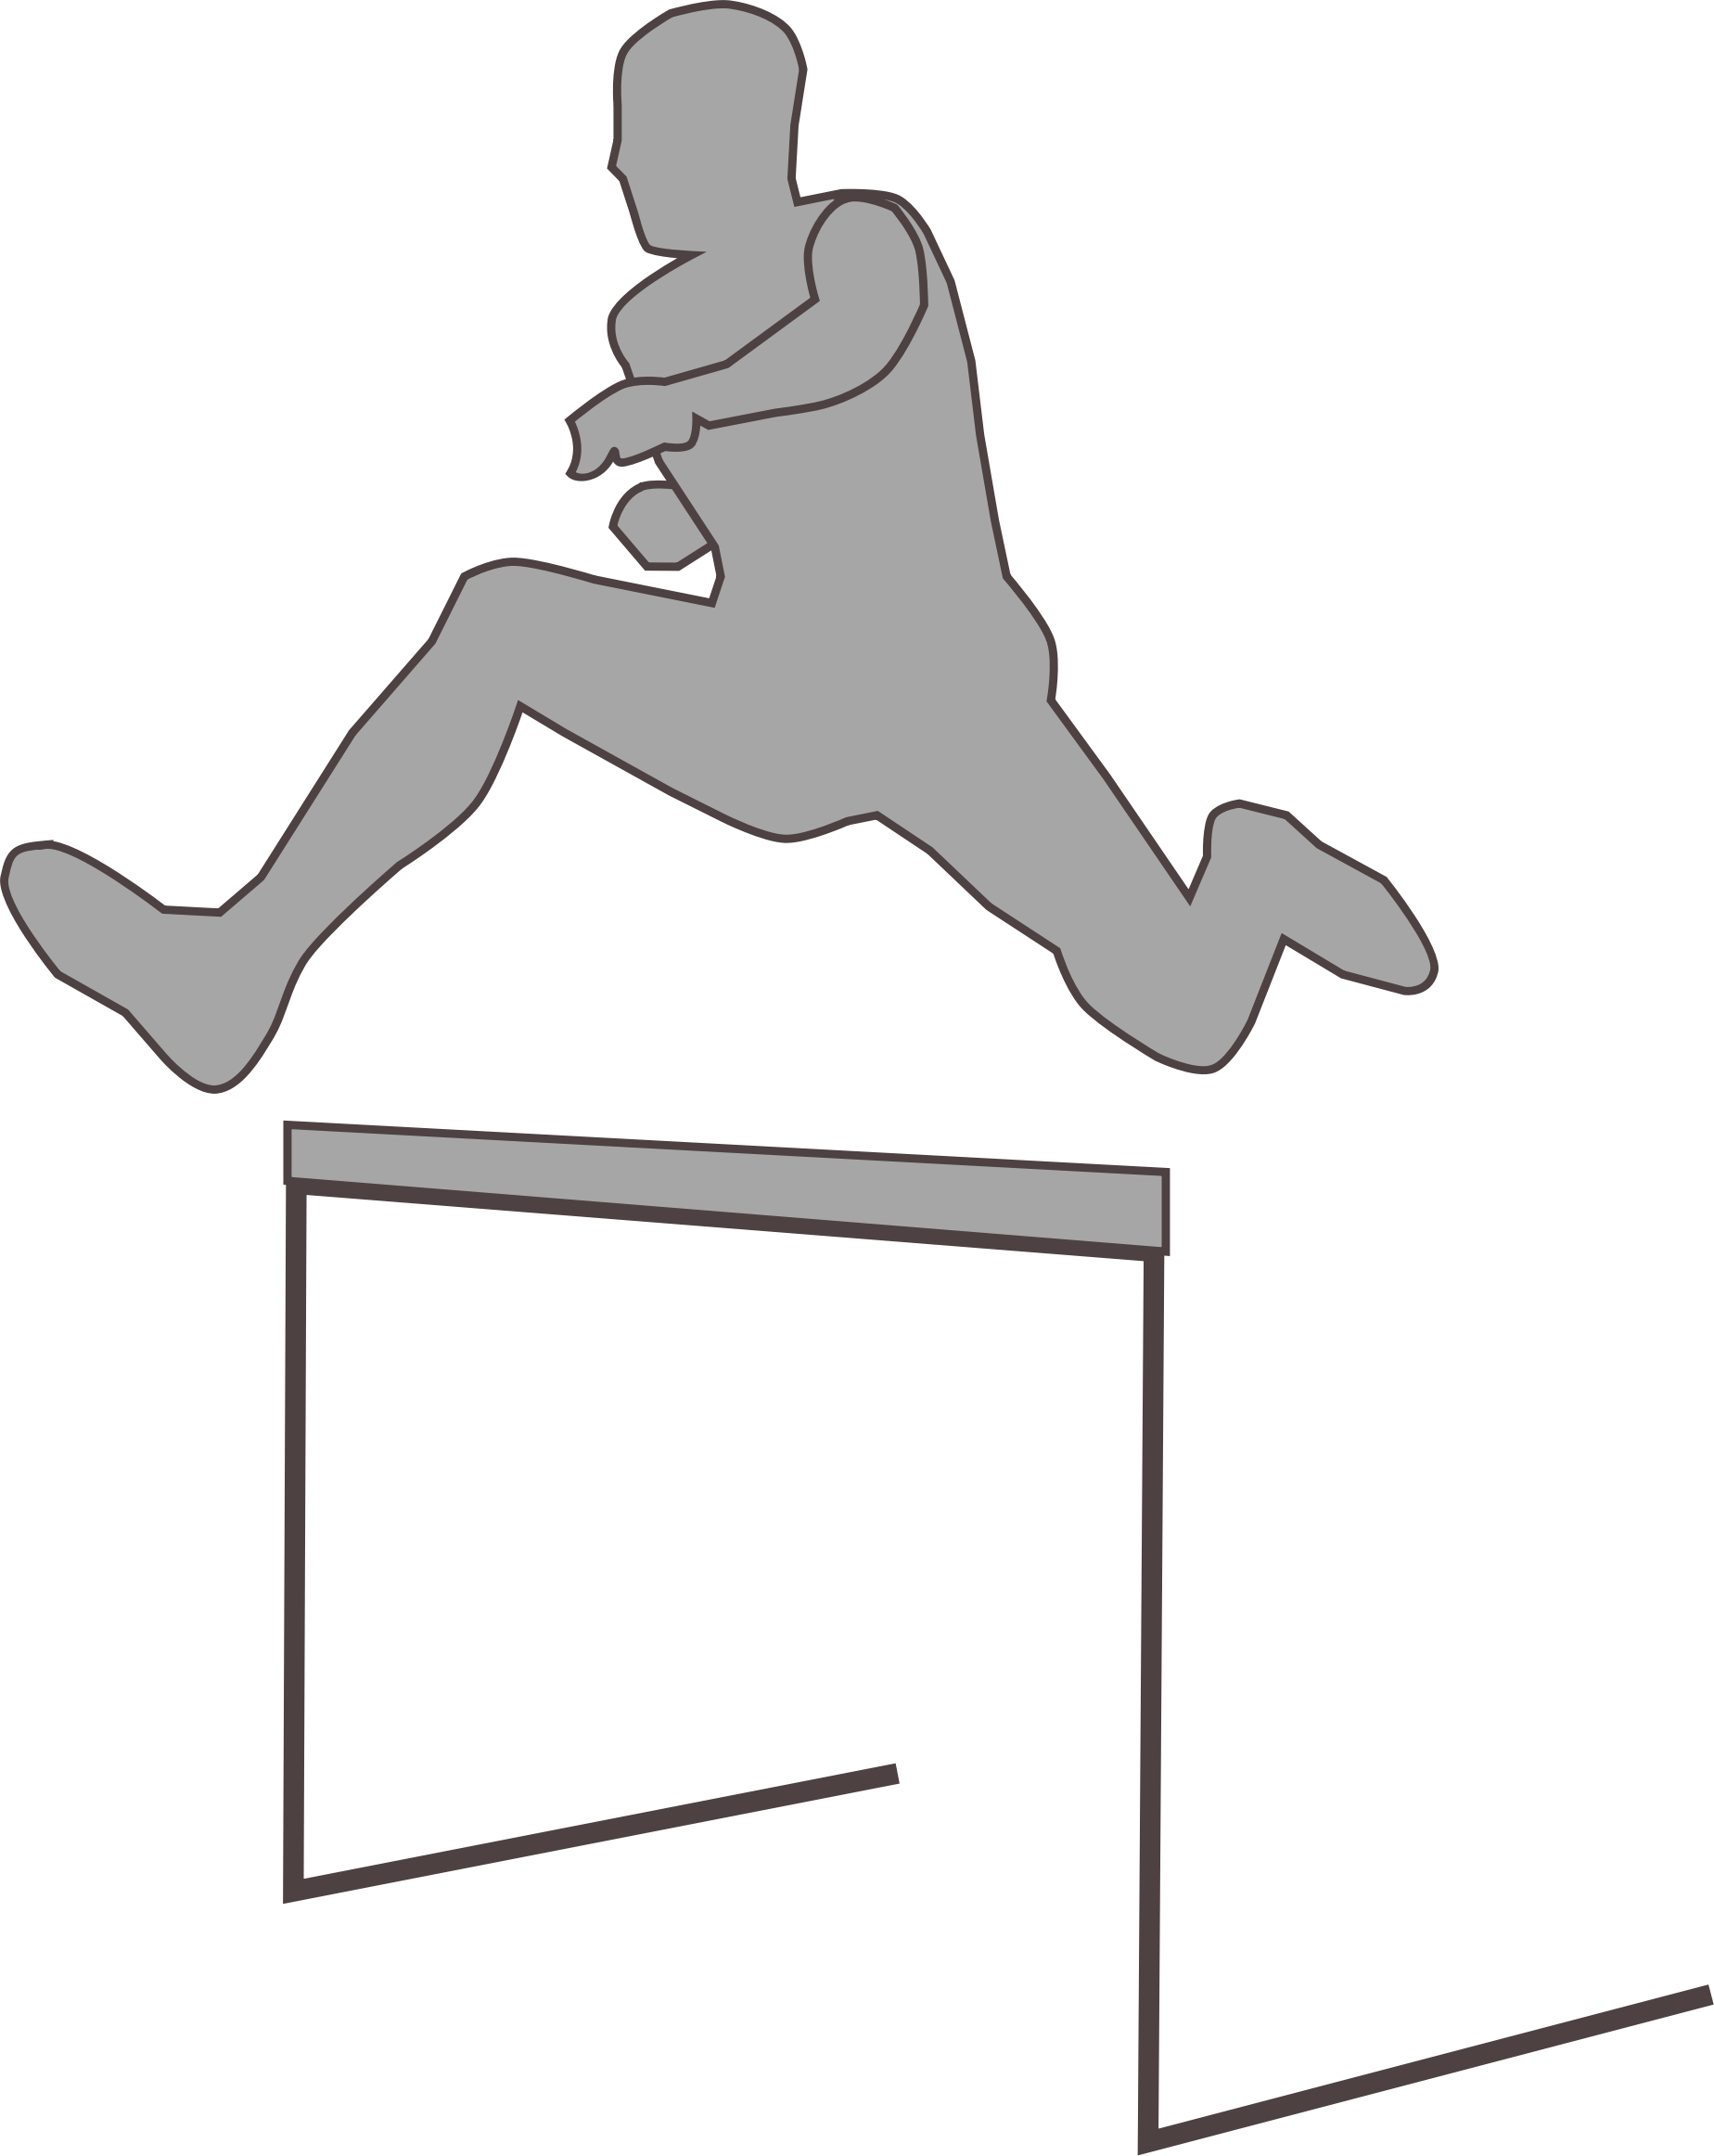 Racing clipart obstacle race. Hurdling silhouette big image